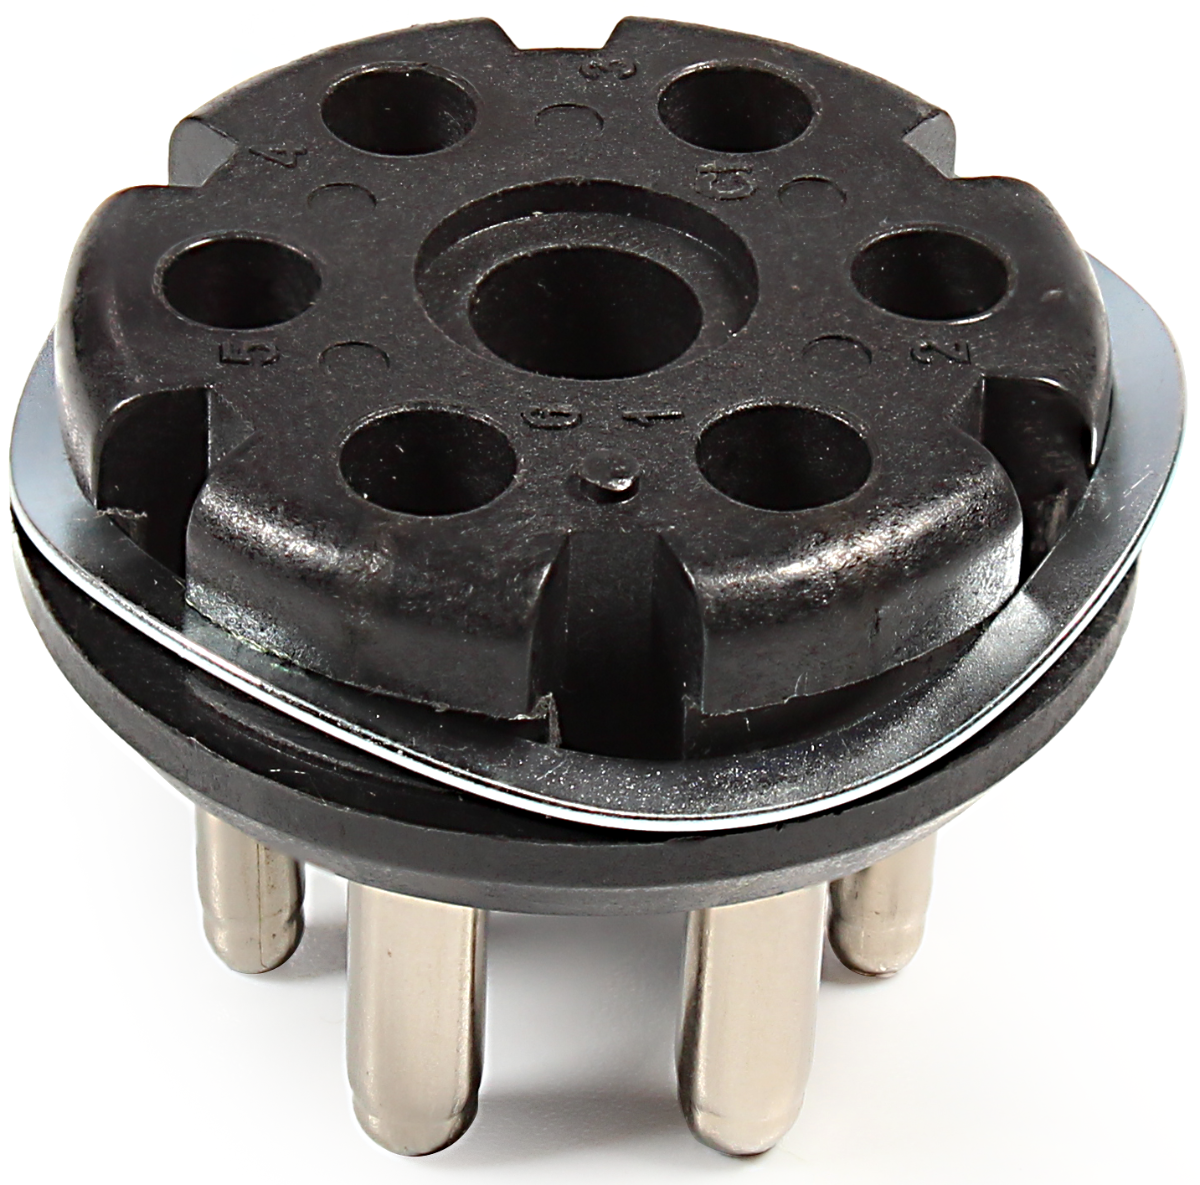 Plug - for Leslie, 6 Pin Male, wavy washer